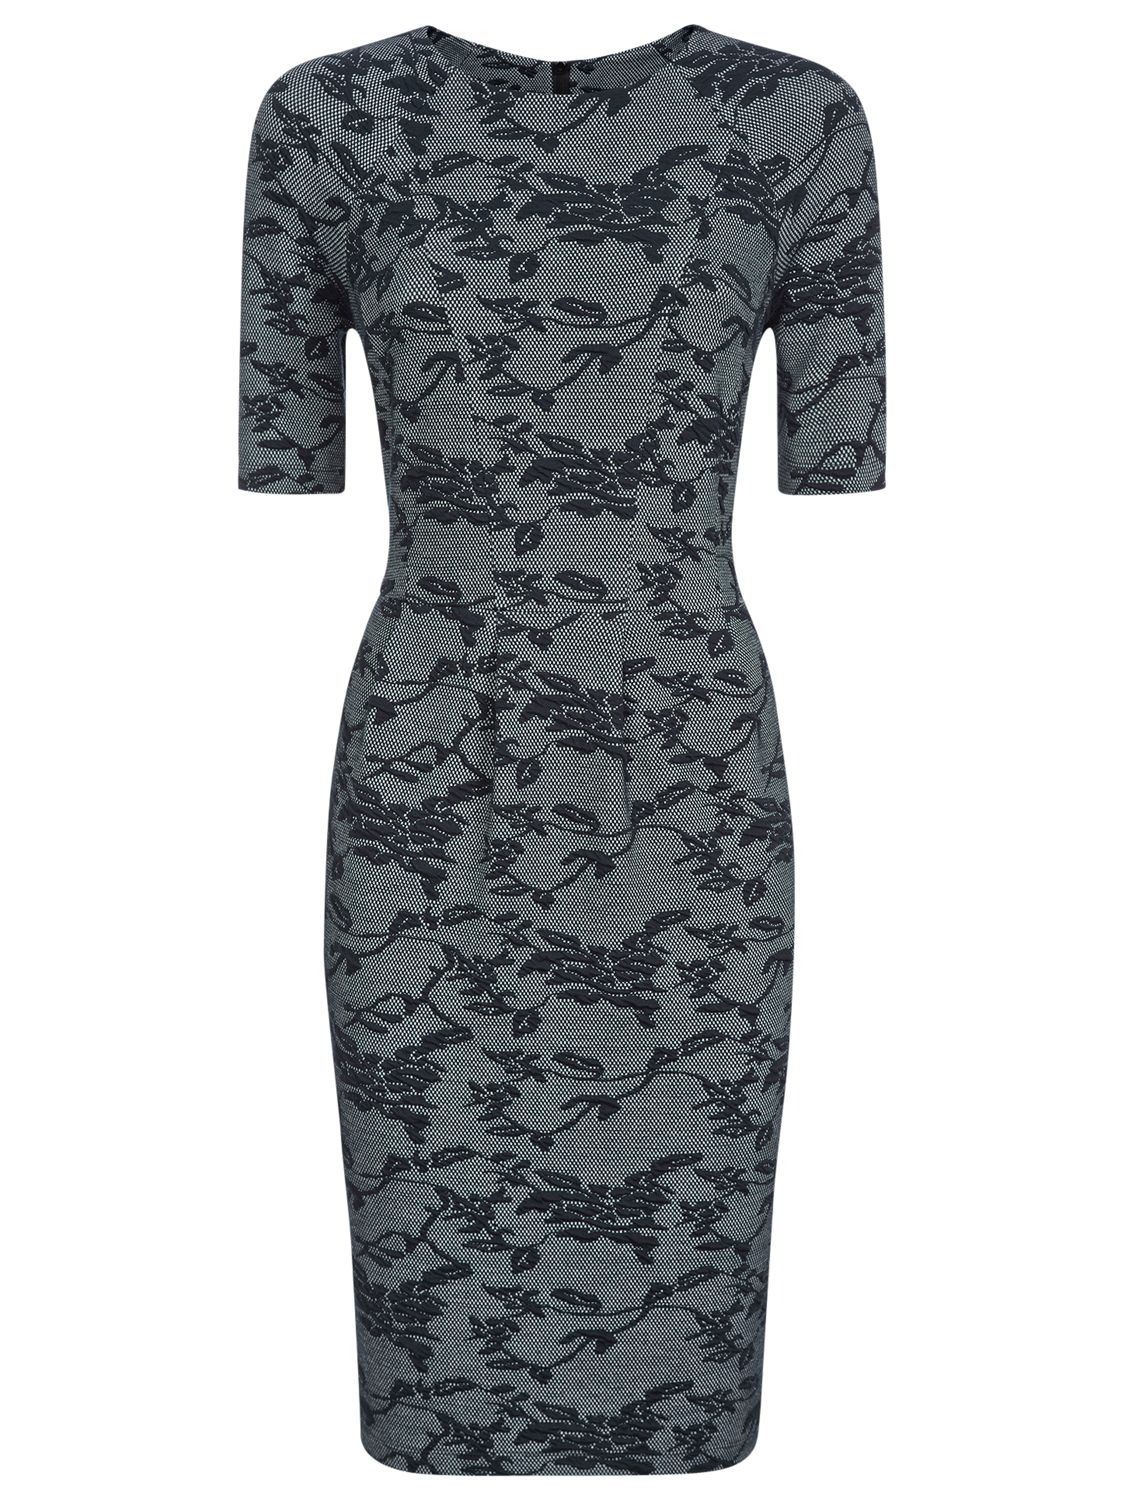 kaliko lace panelled dress grey, kaliko, lace, panelled, dress, grey, clearance, womenswear offers, womens dresses offers, special offers, 20% off selected kaliko, women, inactive womenswear, new reductions, womens dresses, 1654429